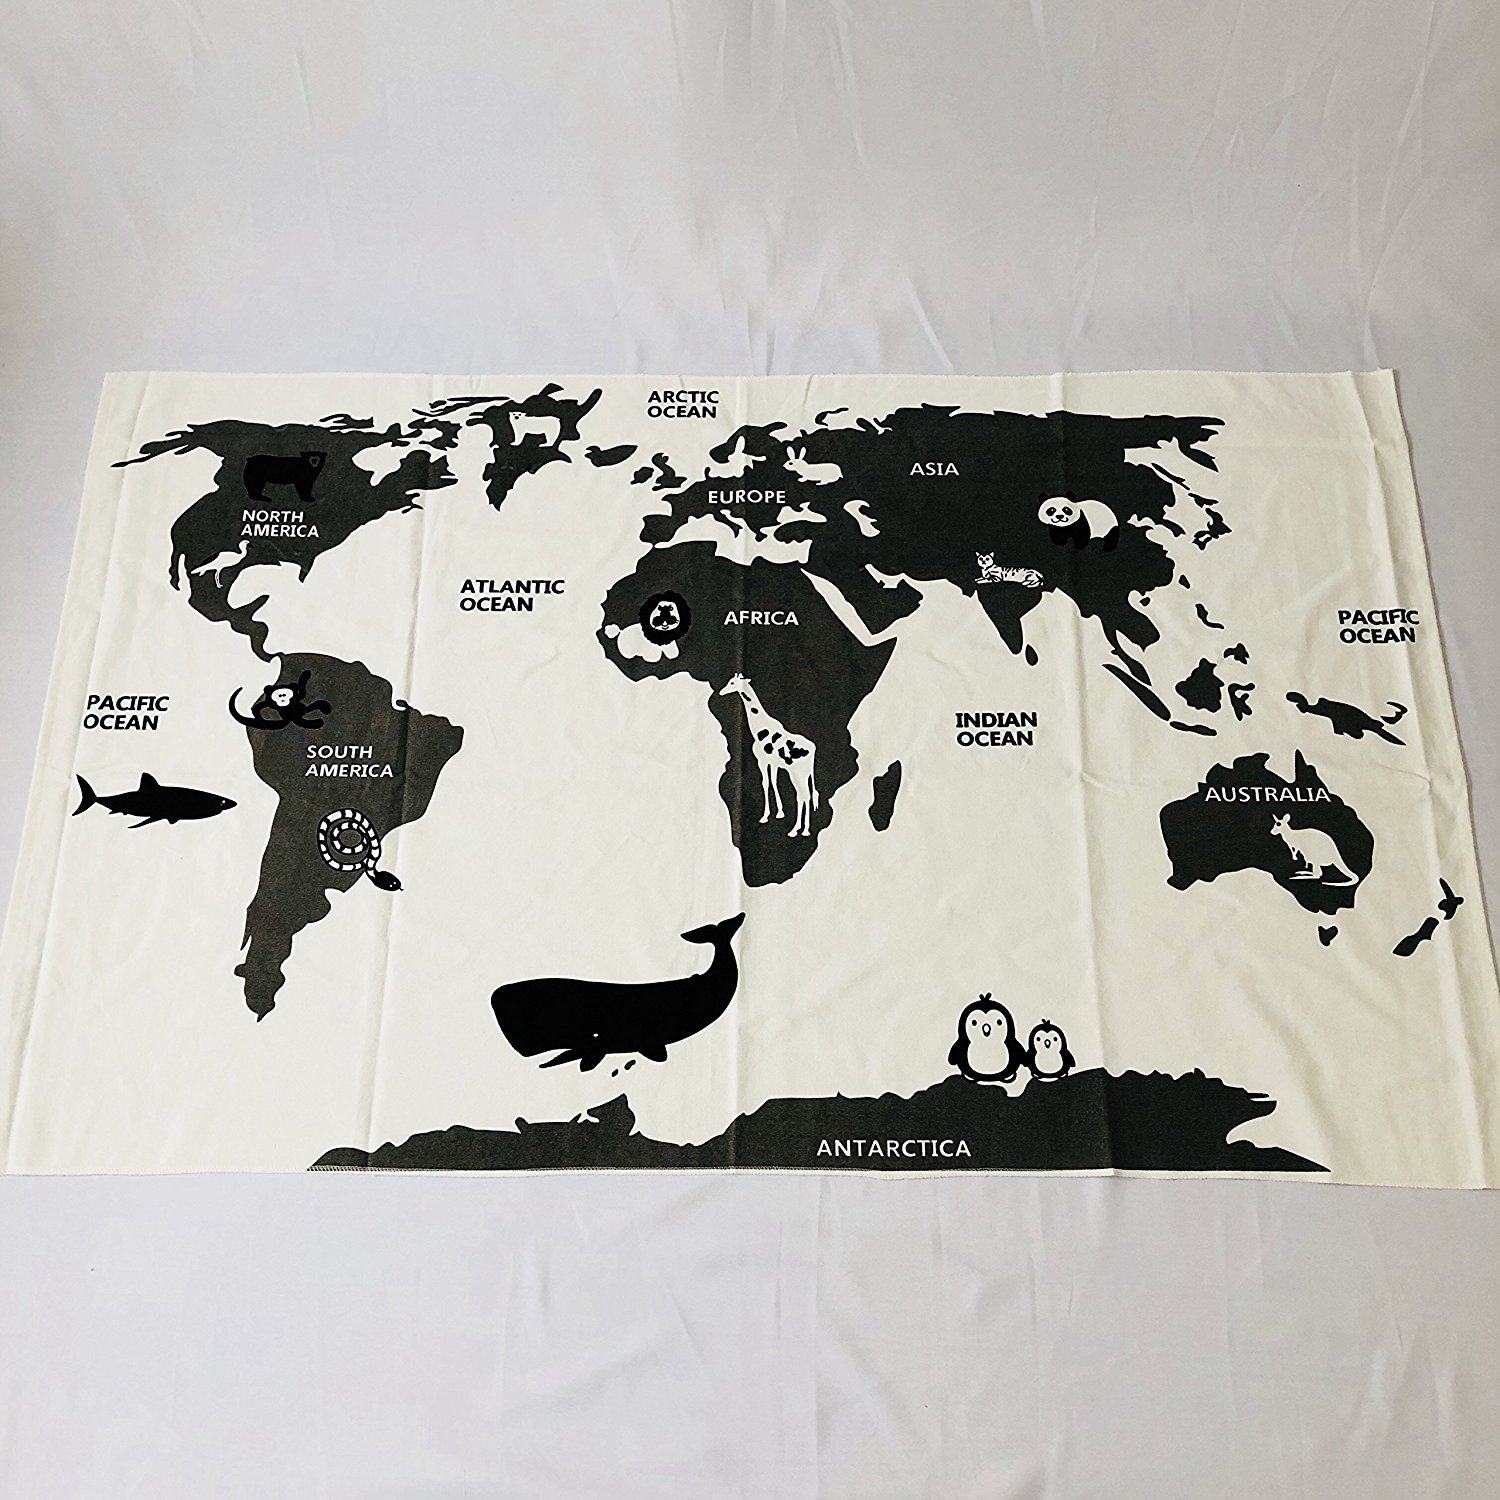 Cheap children world map find children world map deals on line at get quotations world map kids rug street mapchildren area rugbaby racing game blanket gumiabroncs Images